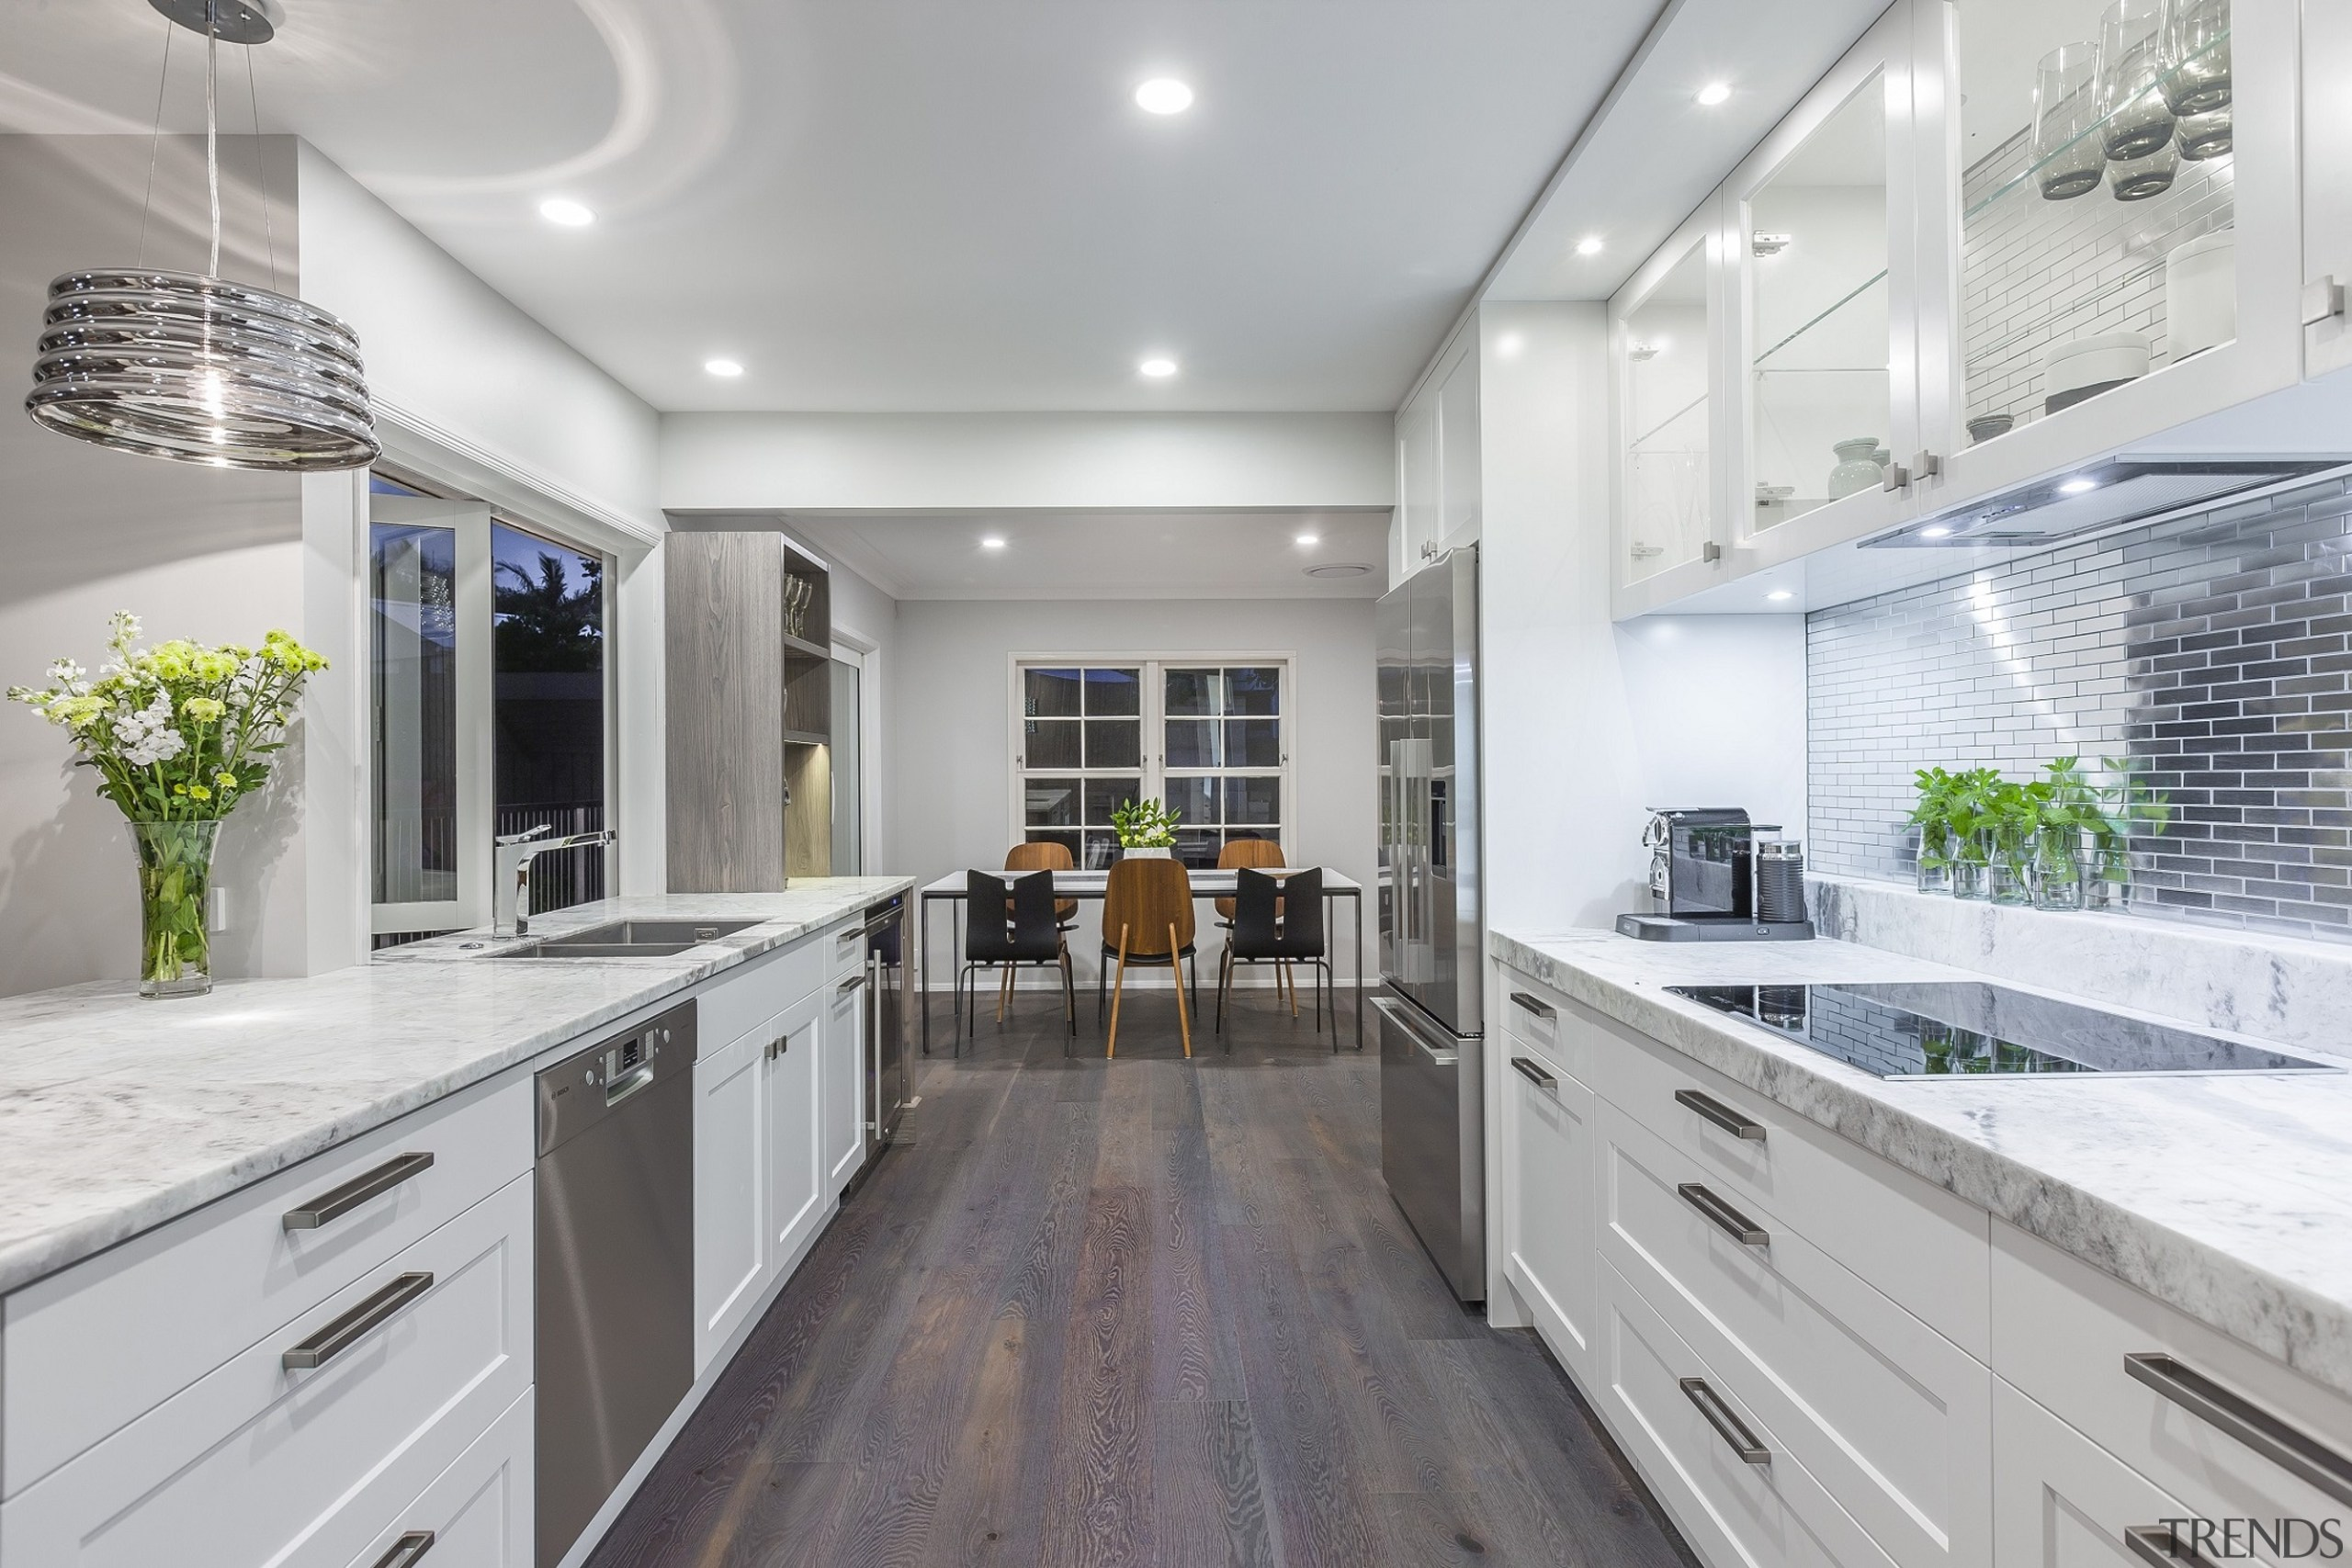 Sunnyhills II - countertop | interior design | countertop, interior design, kitchen, real estate, gray